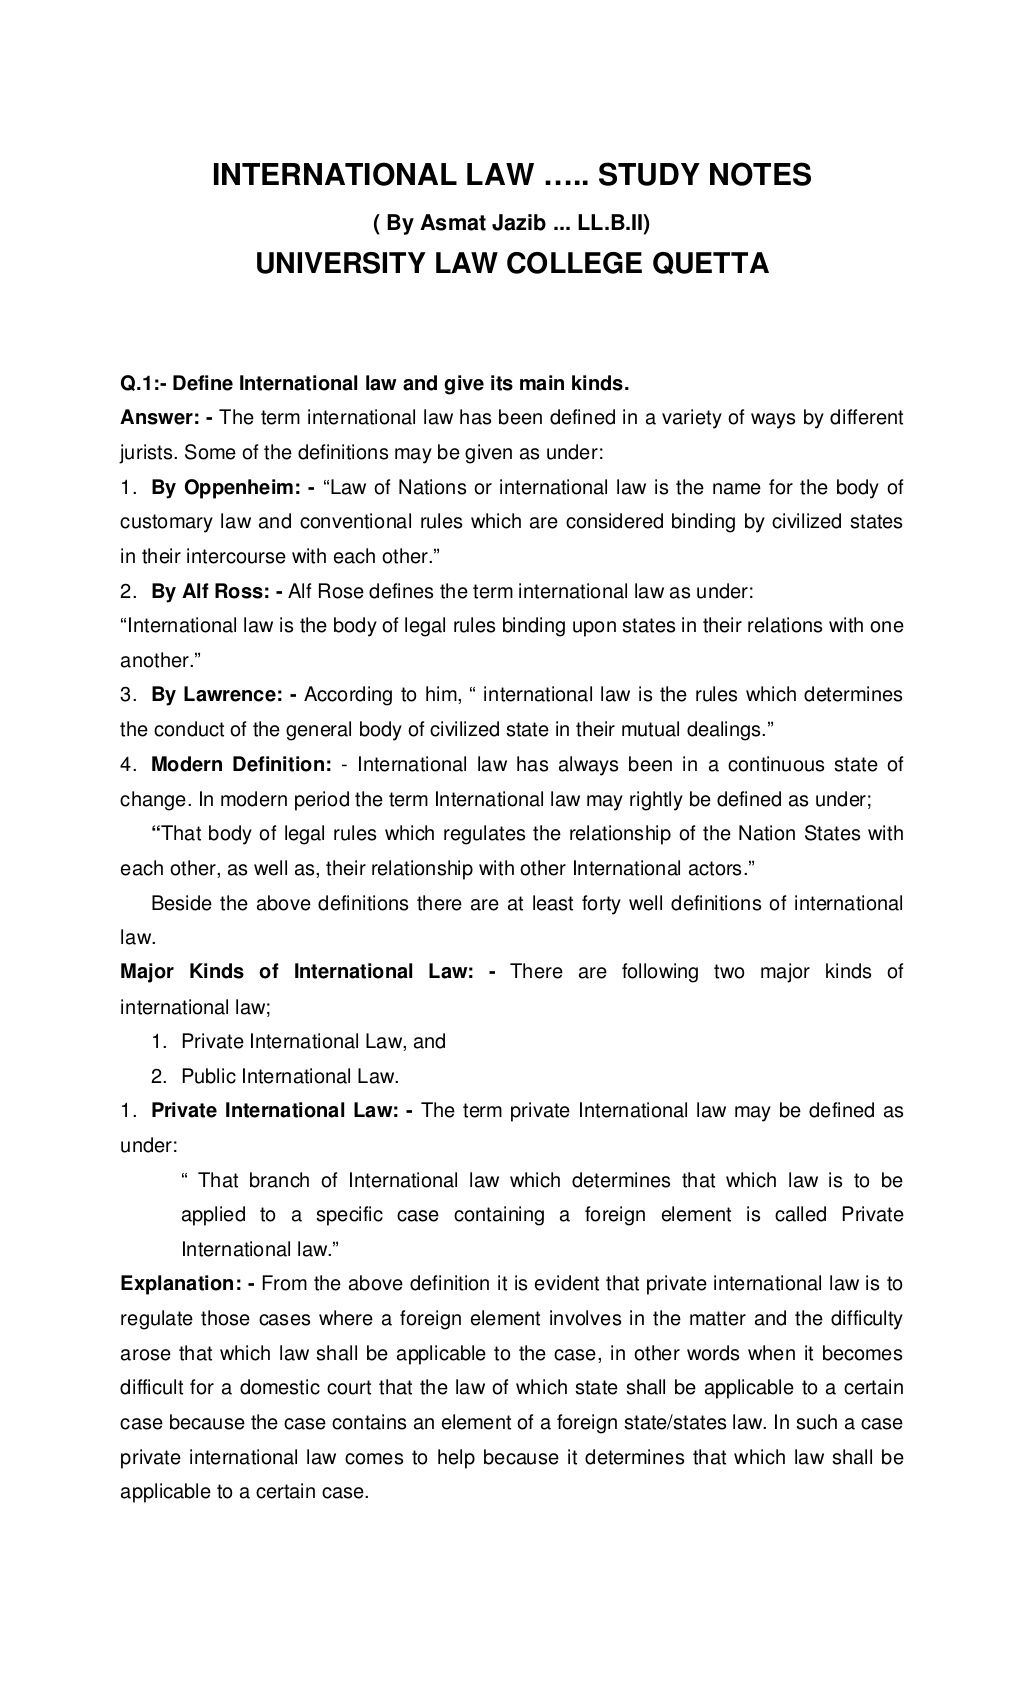 International law notes by asmatullah by University Law College